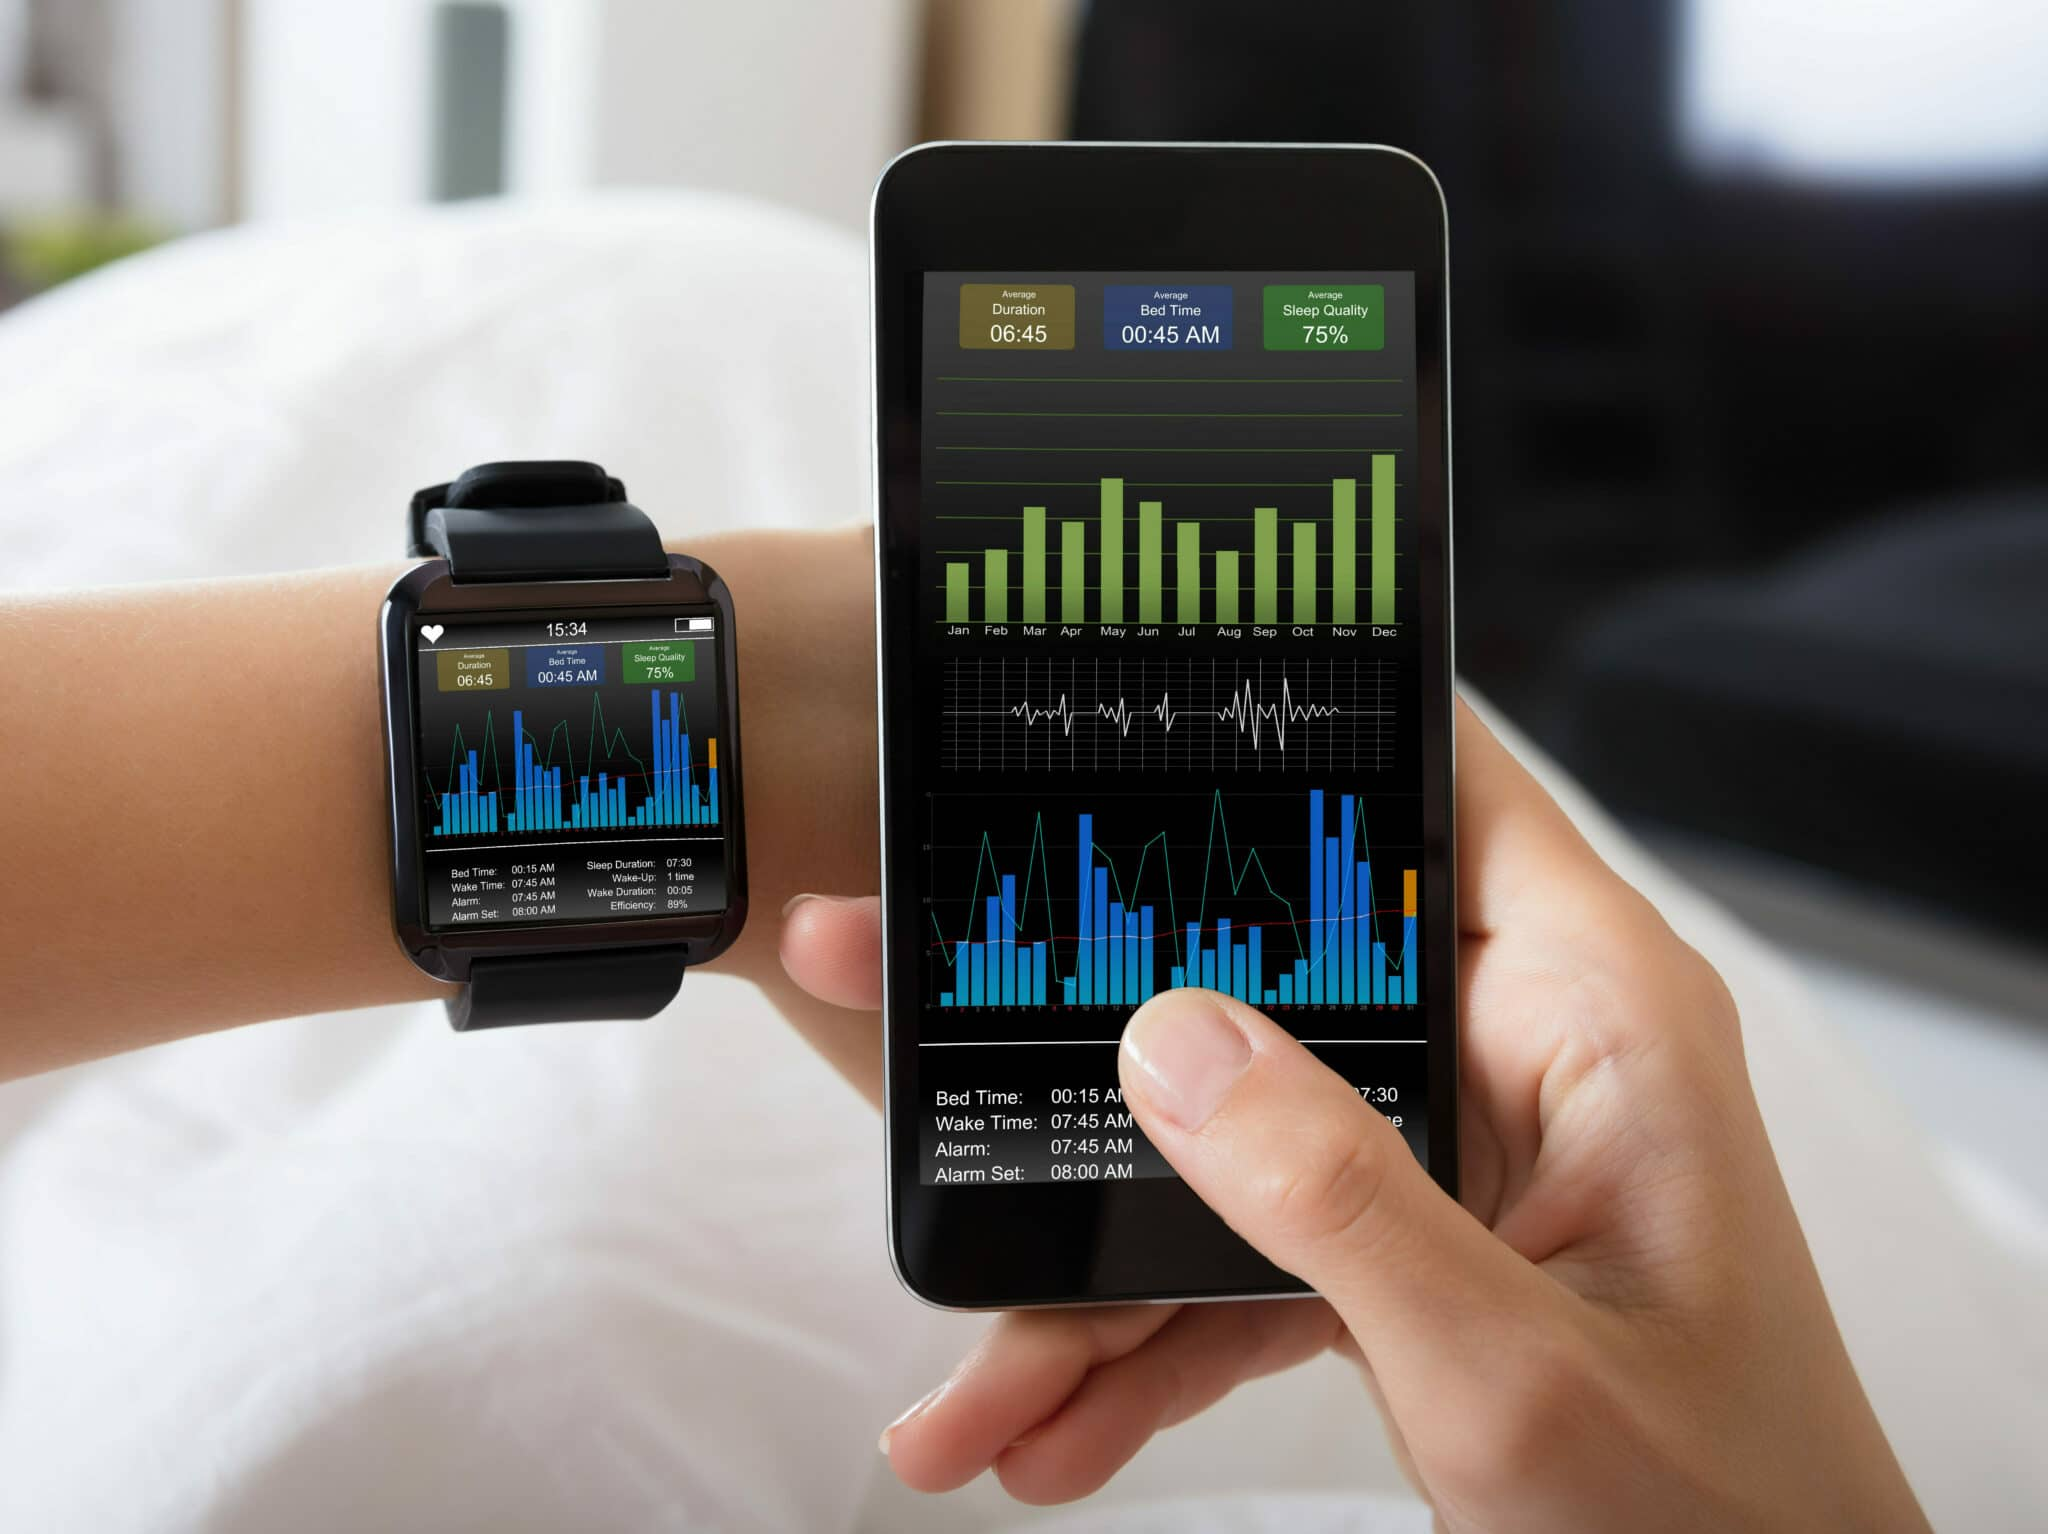 A left wrist wearing a smartwatch and a right hand holding a smartphone. Both devices are displaying the same graphs.